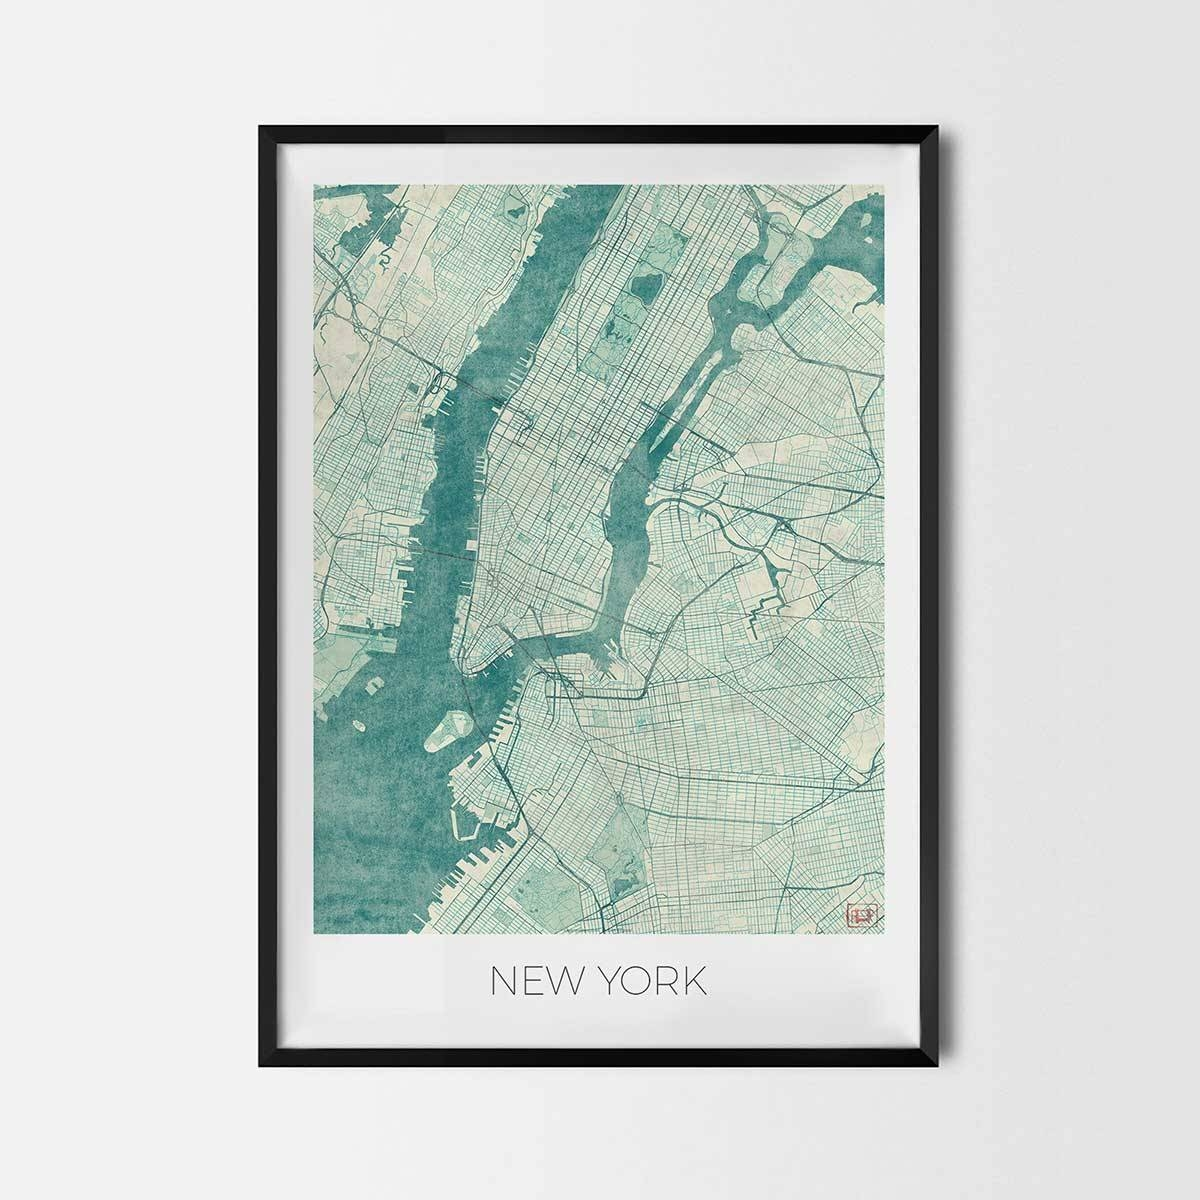 City Art Posters | Map Posters And Art Prints – Gifts For City In 2017 City Prints Map Wall Art (View 3 of 20)